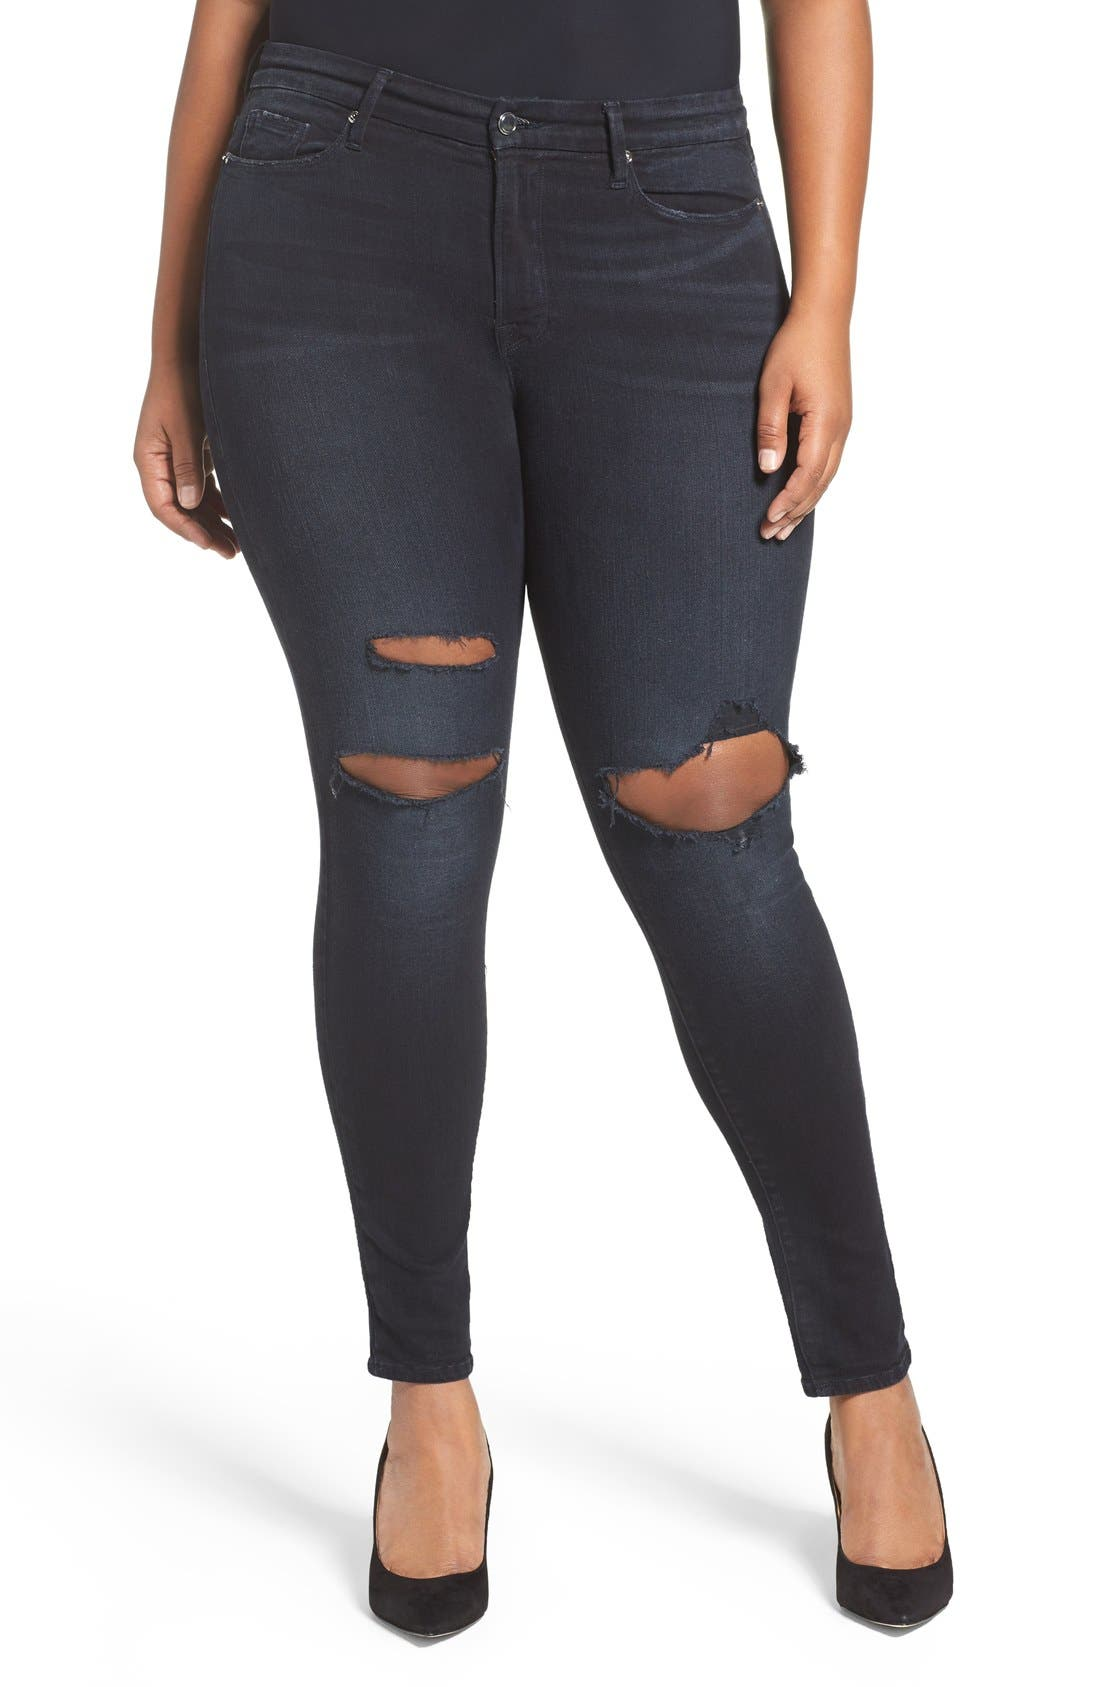 Good Legs High Rise Ripped Skinny Jeans,                             Alternate thumbnail 7, color,                             Blue 001 Washed Black